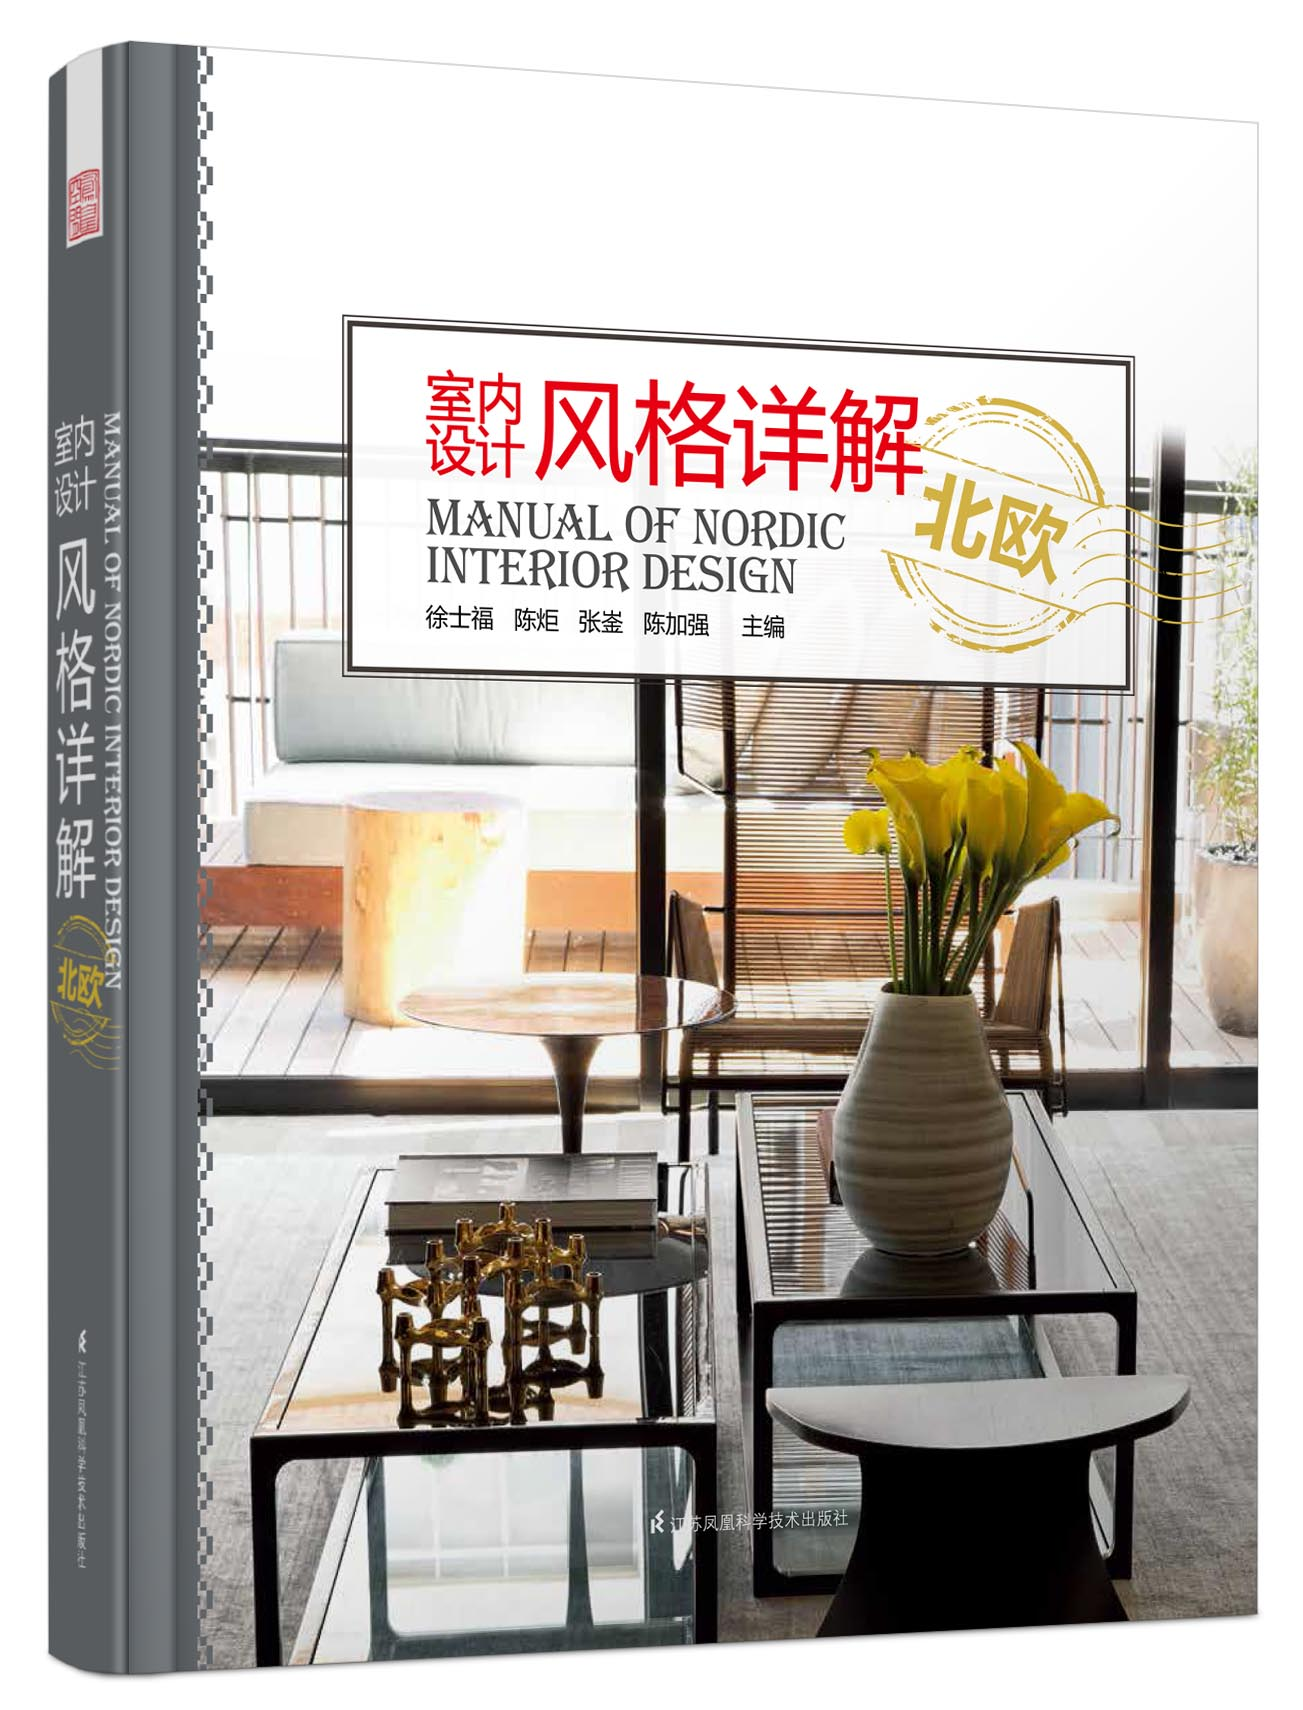 Interior Design Book 11 best photos of interior design book layout - interior  book